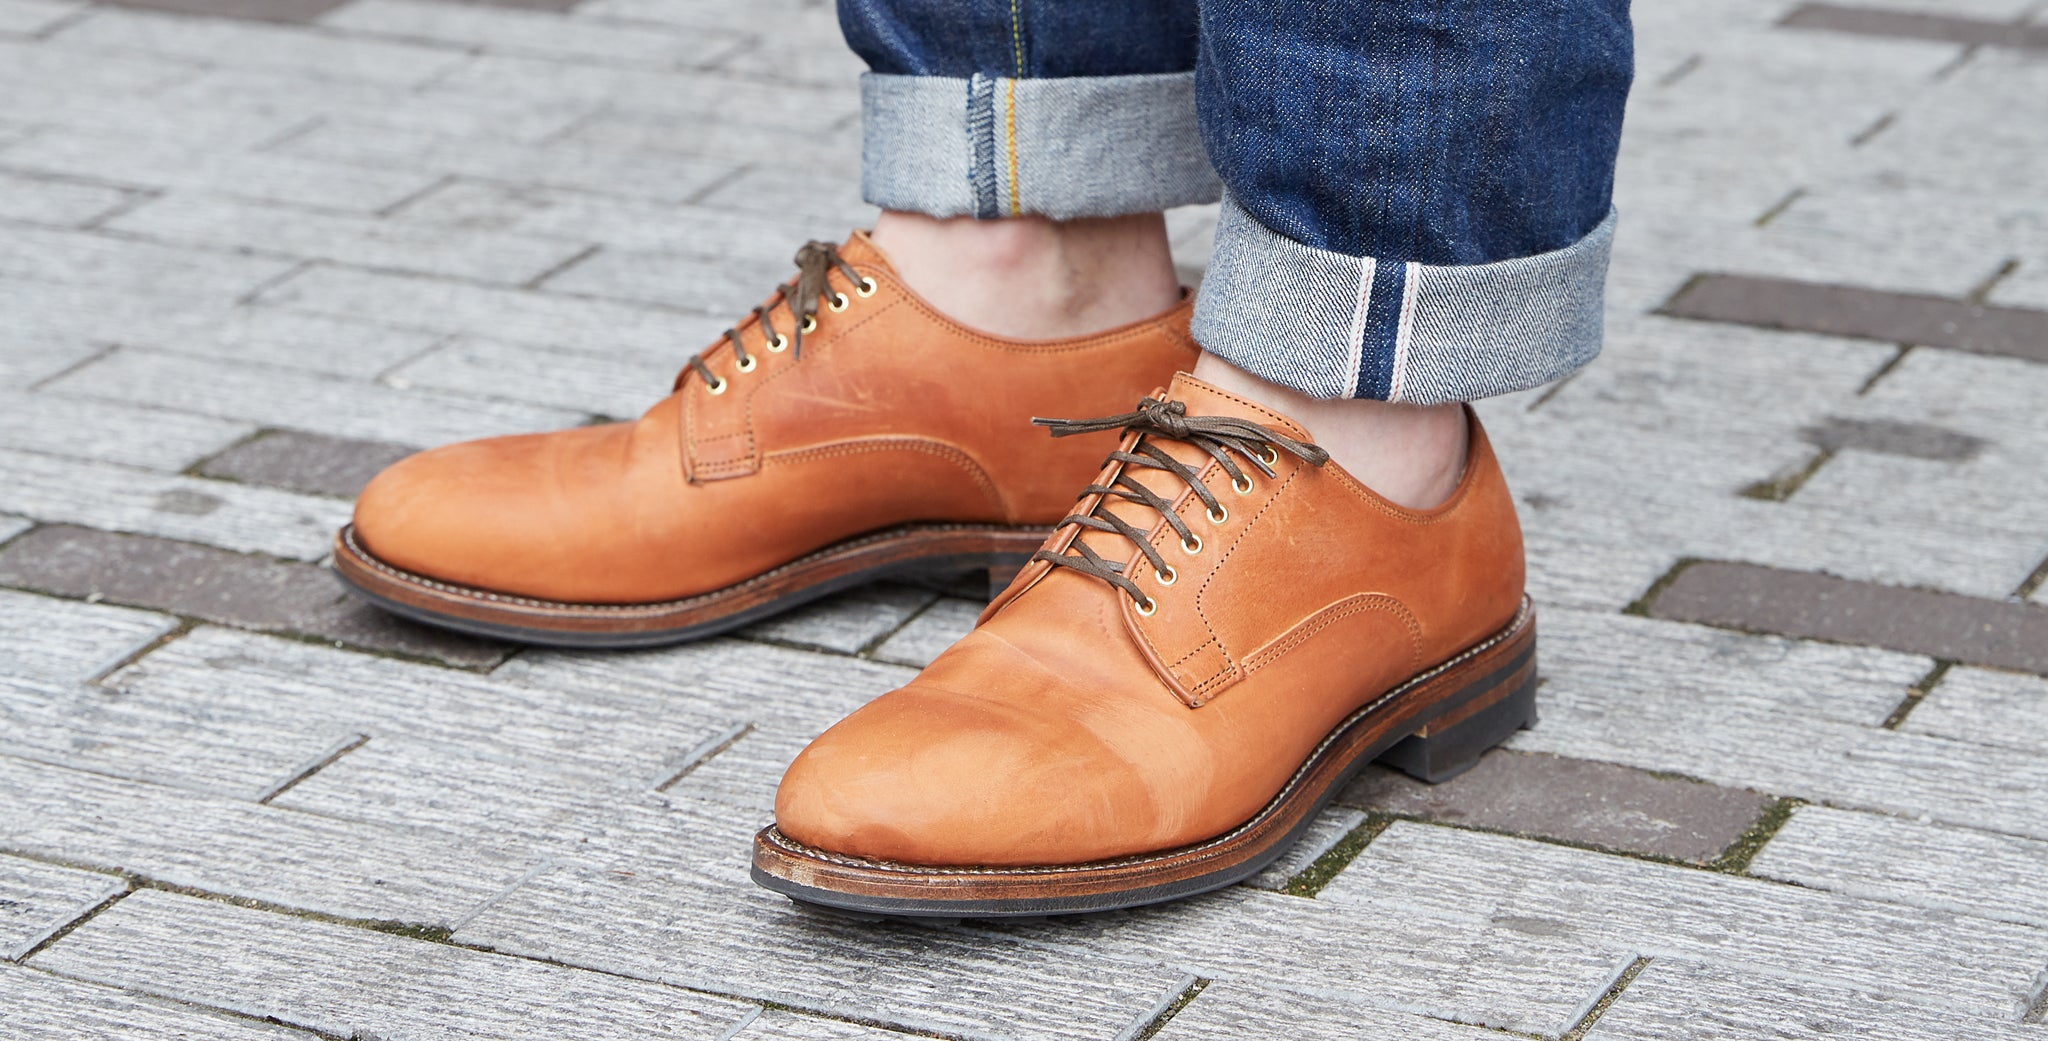 Division Road Tannino Vitello Calf Derby Shoe